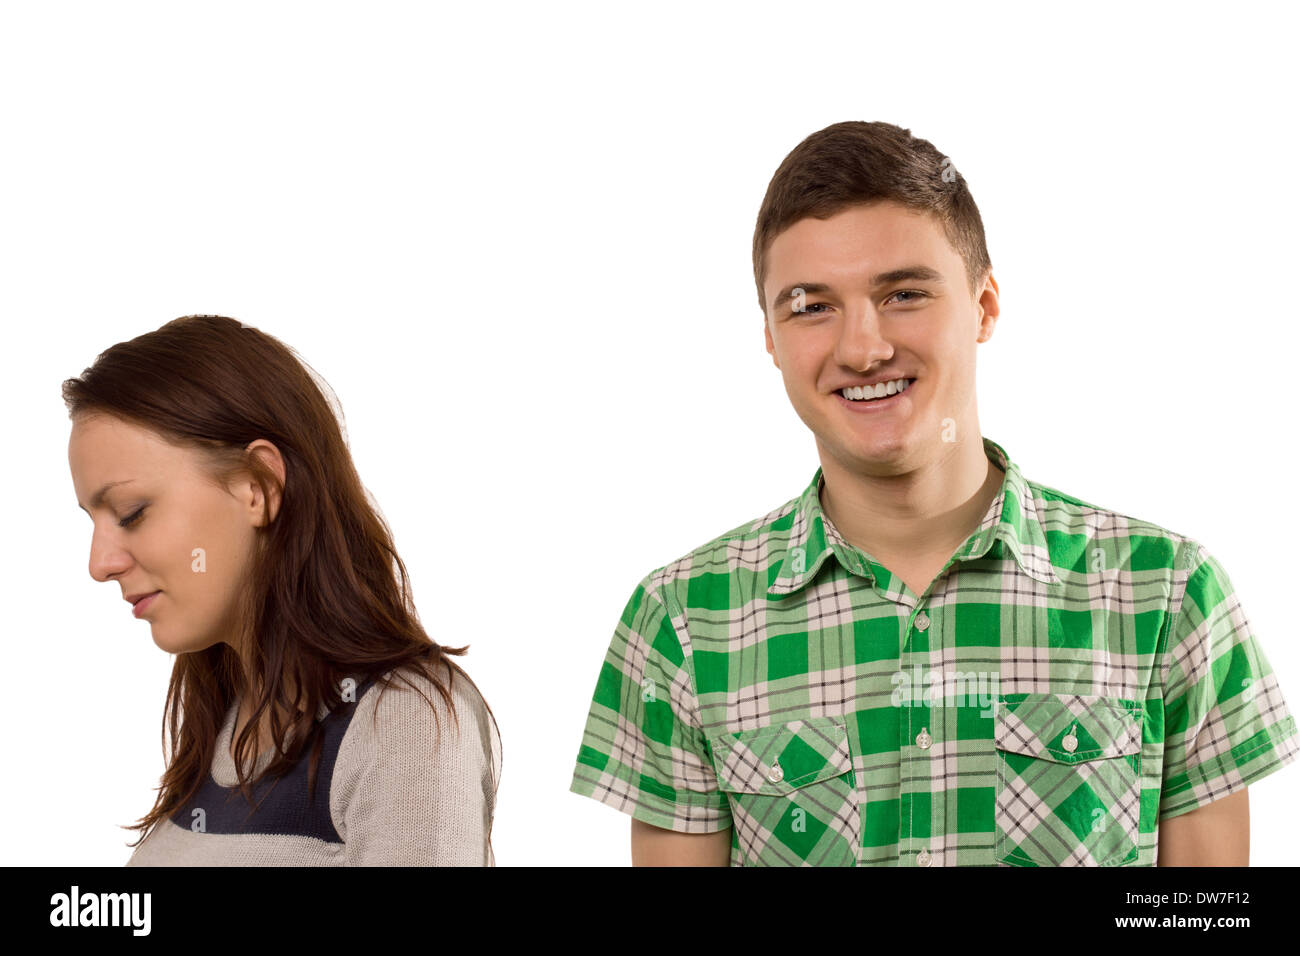 nconsiderate unfeeling handsome young man smiling with pleasure as his girlfriend turns aside in tears upset at his oblivious at - Stock Image